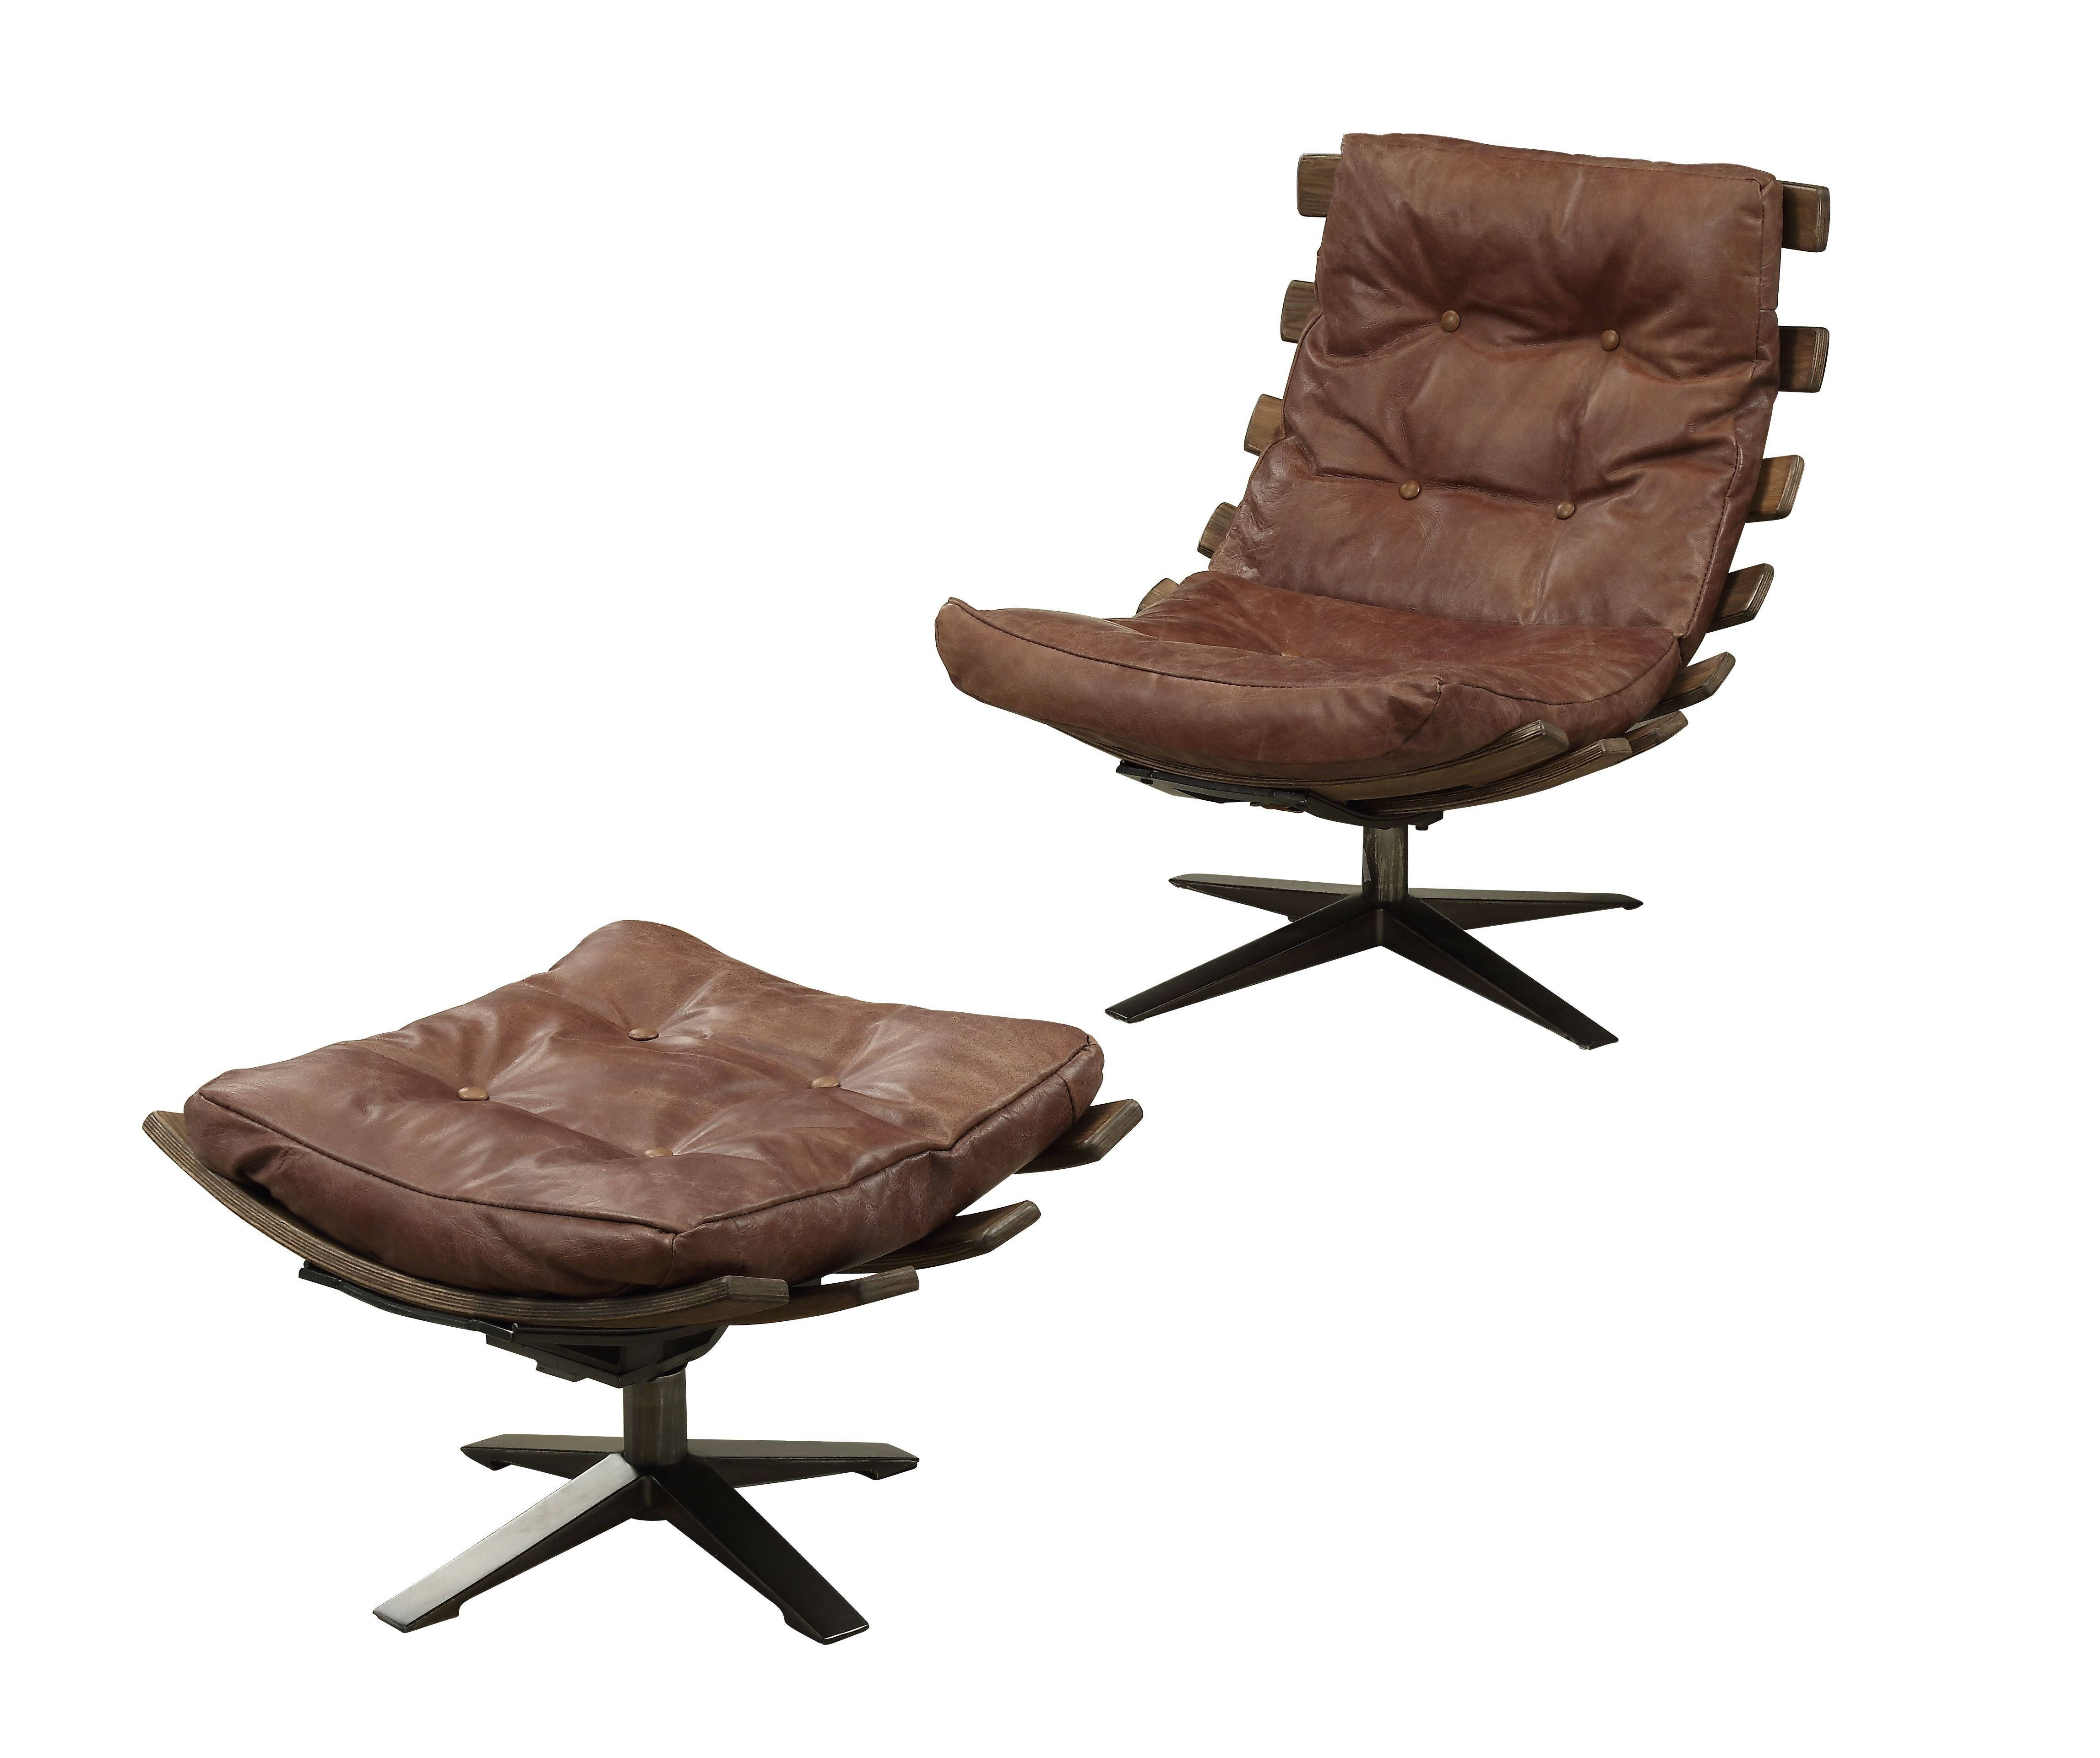 Phenomenal Homeroots Retro Brown Leather Metal 2Pc Chair And Ottoman Set Gmtry Best Dining Table And Chair Ideas Images Gmtryco